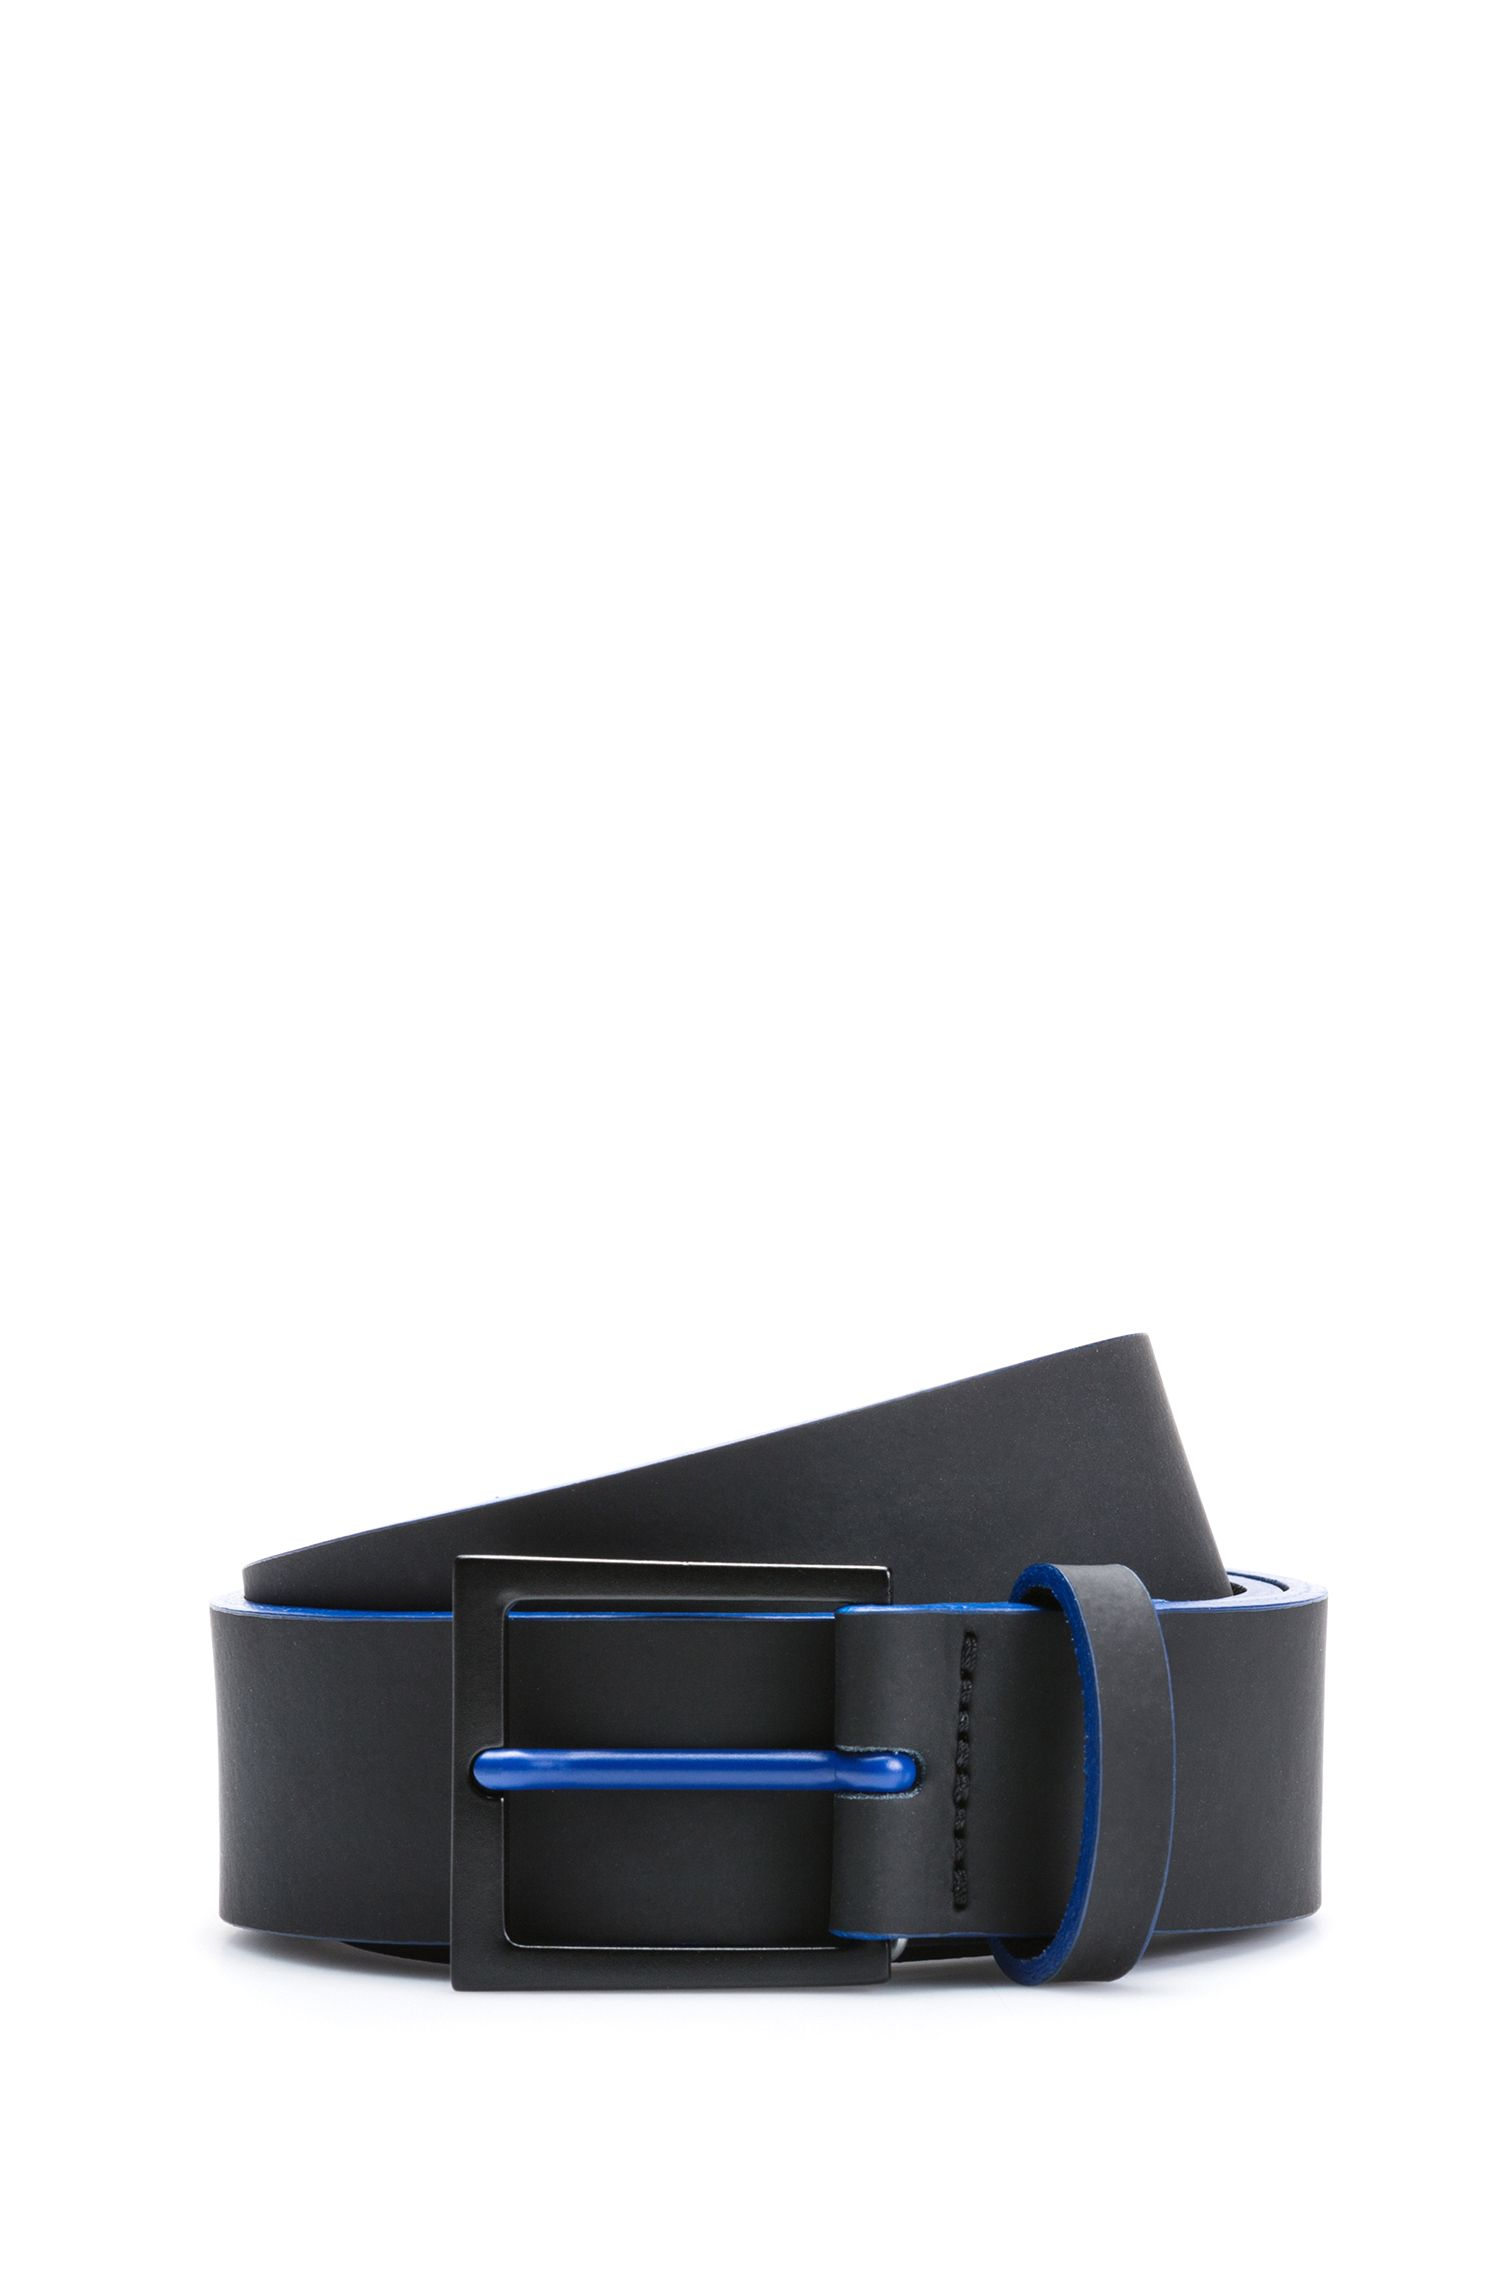 Rubberized-leather belt with matte black hardware, Black